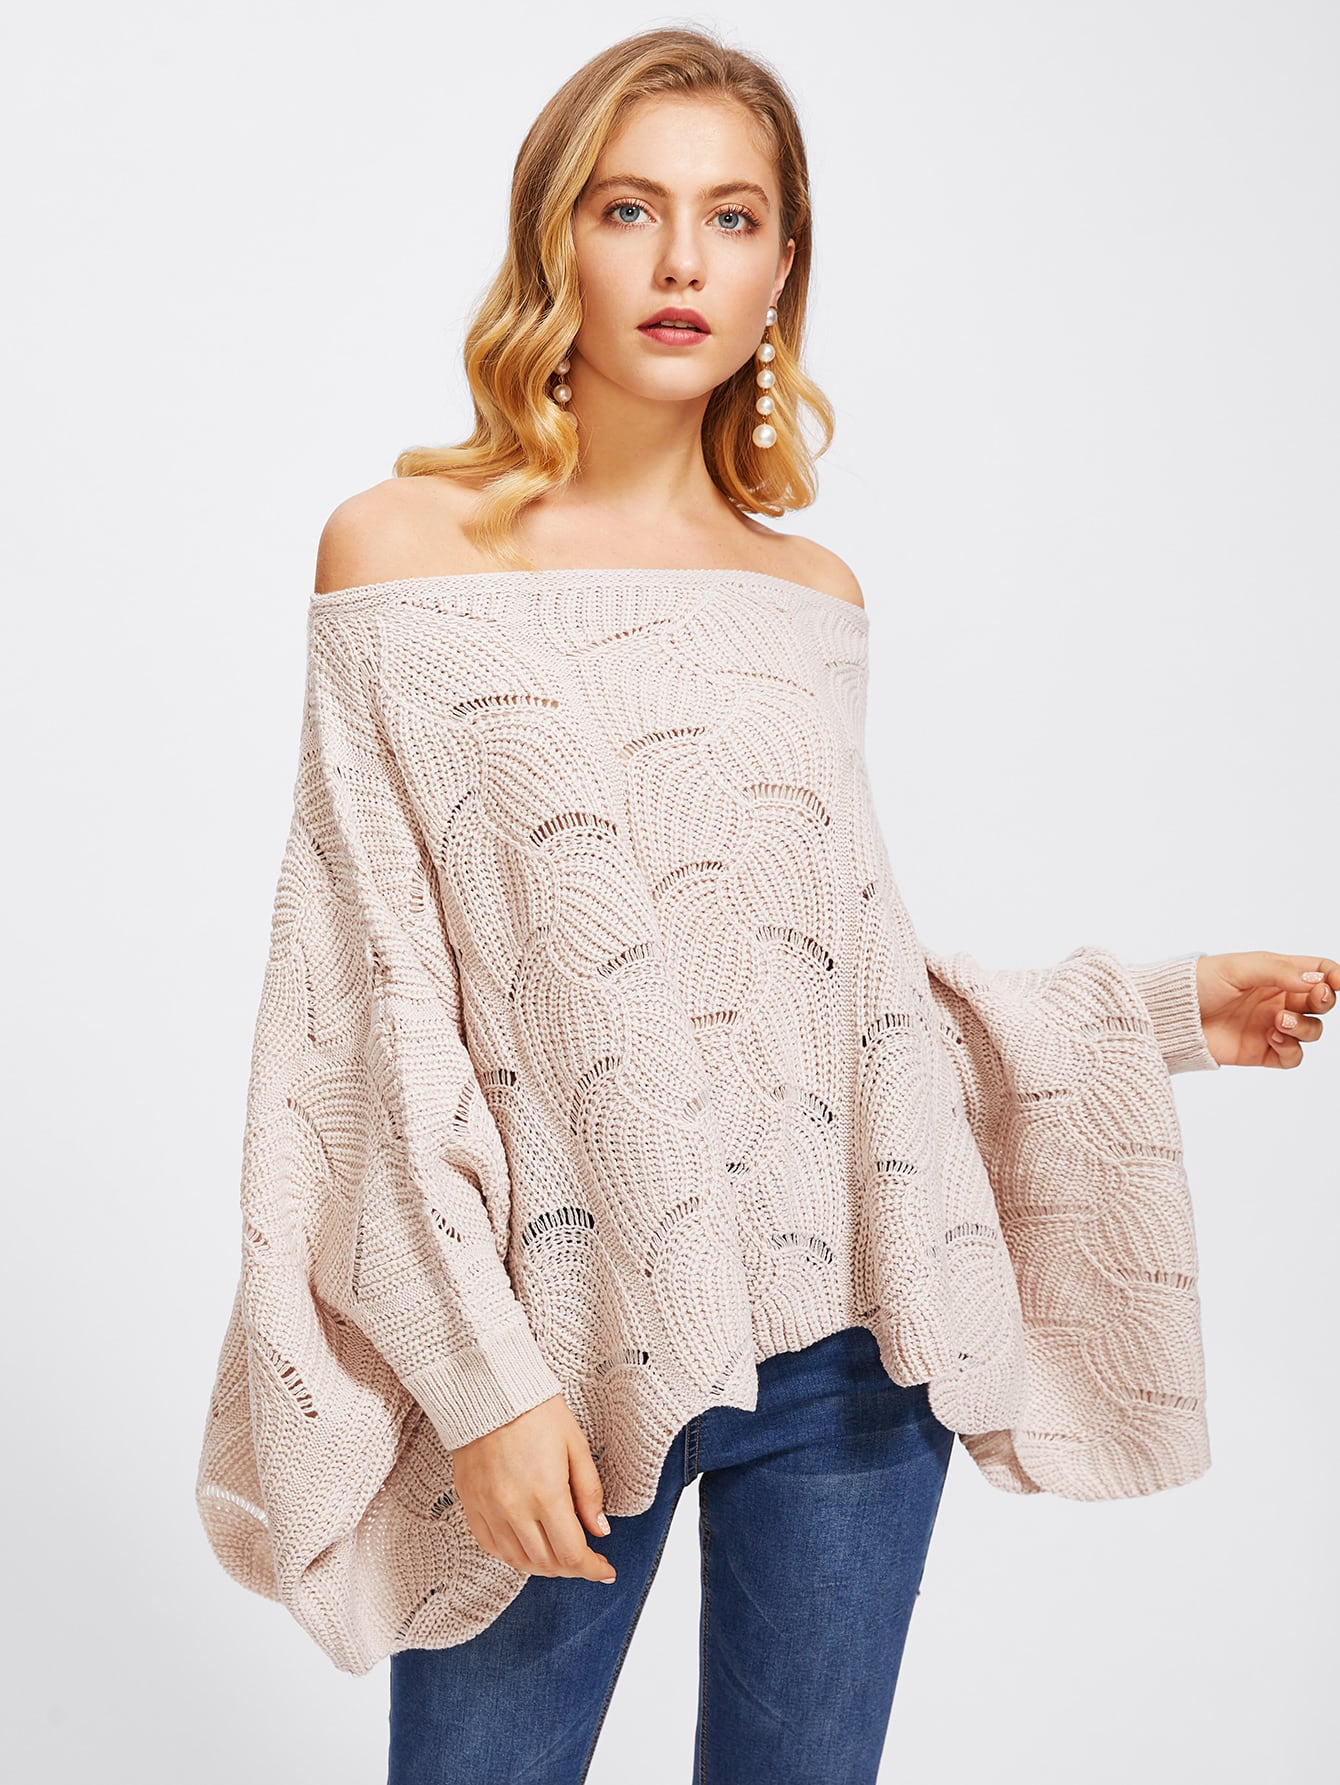 Loose Knit Scalloped Dolman Sweater loose knit scalloped dolman sweater